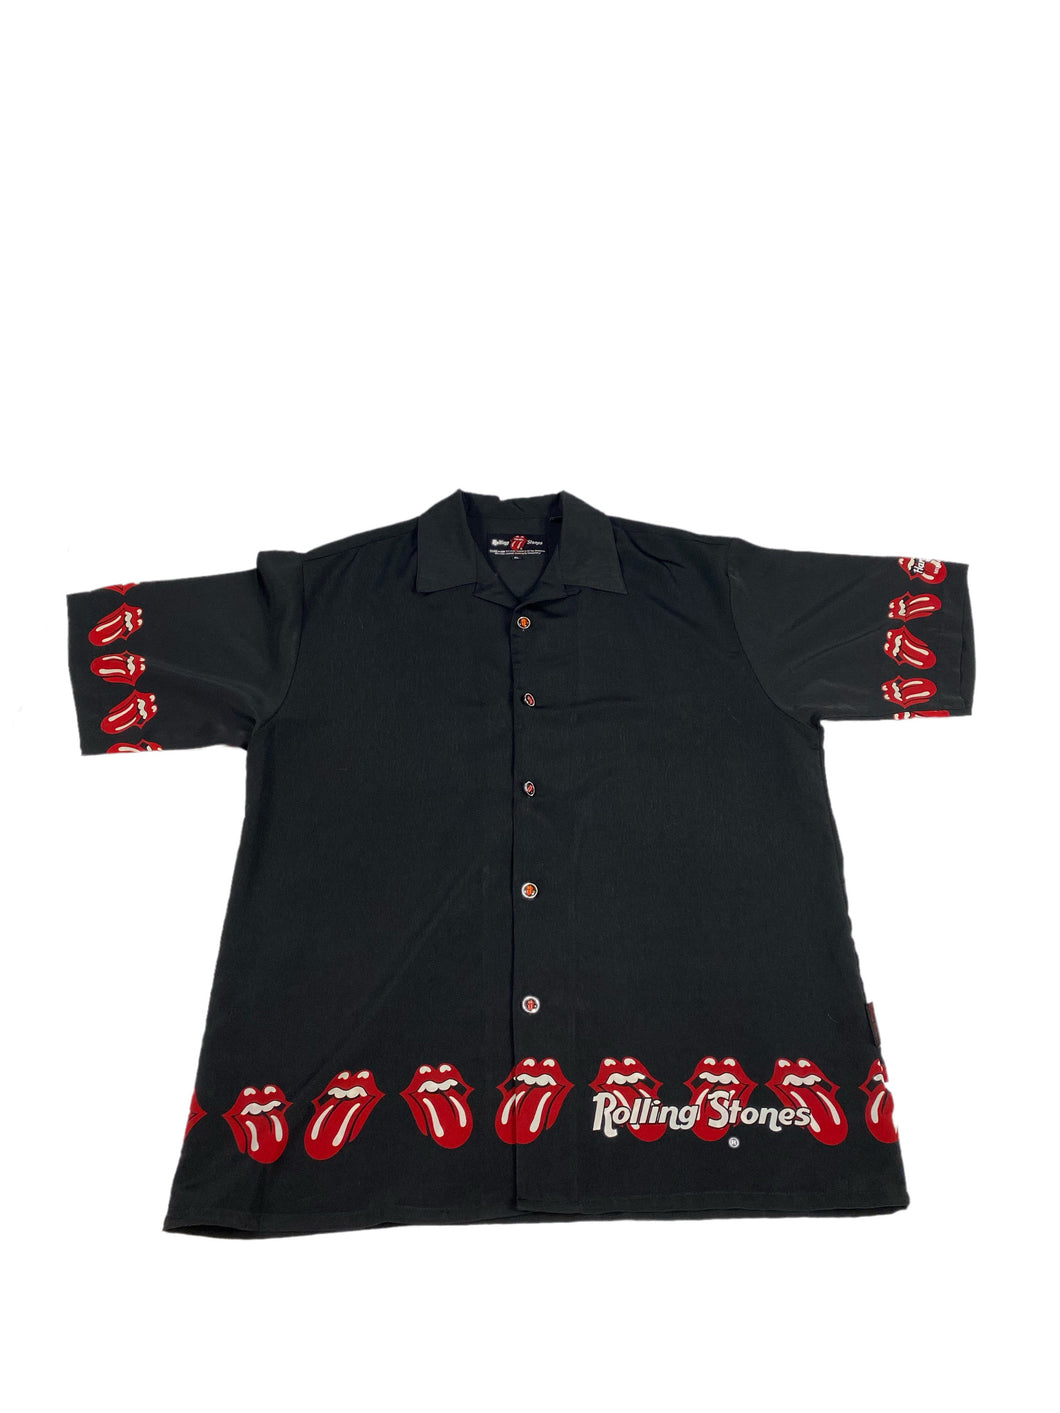 Hard Rock Cafe Rolling Stones Button Down